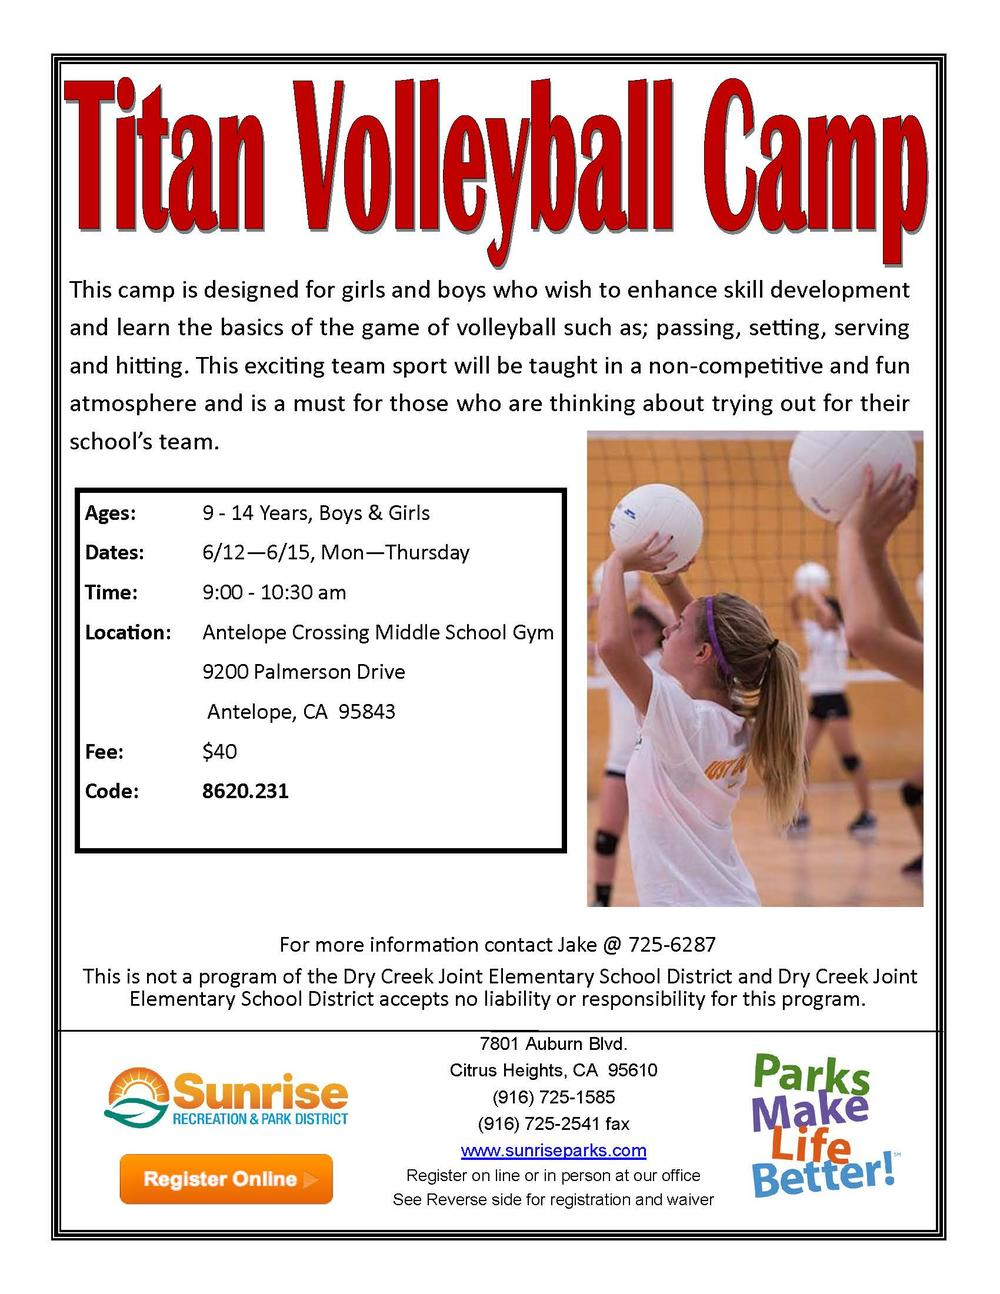 Sunrise Recreation and Park Titan Volleyball Camp Flyer